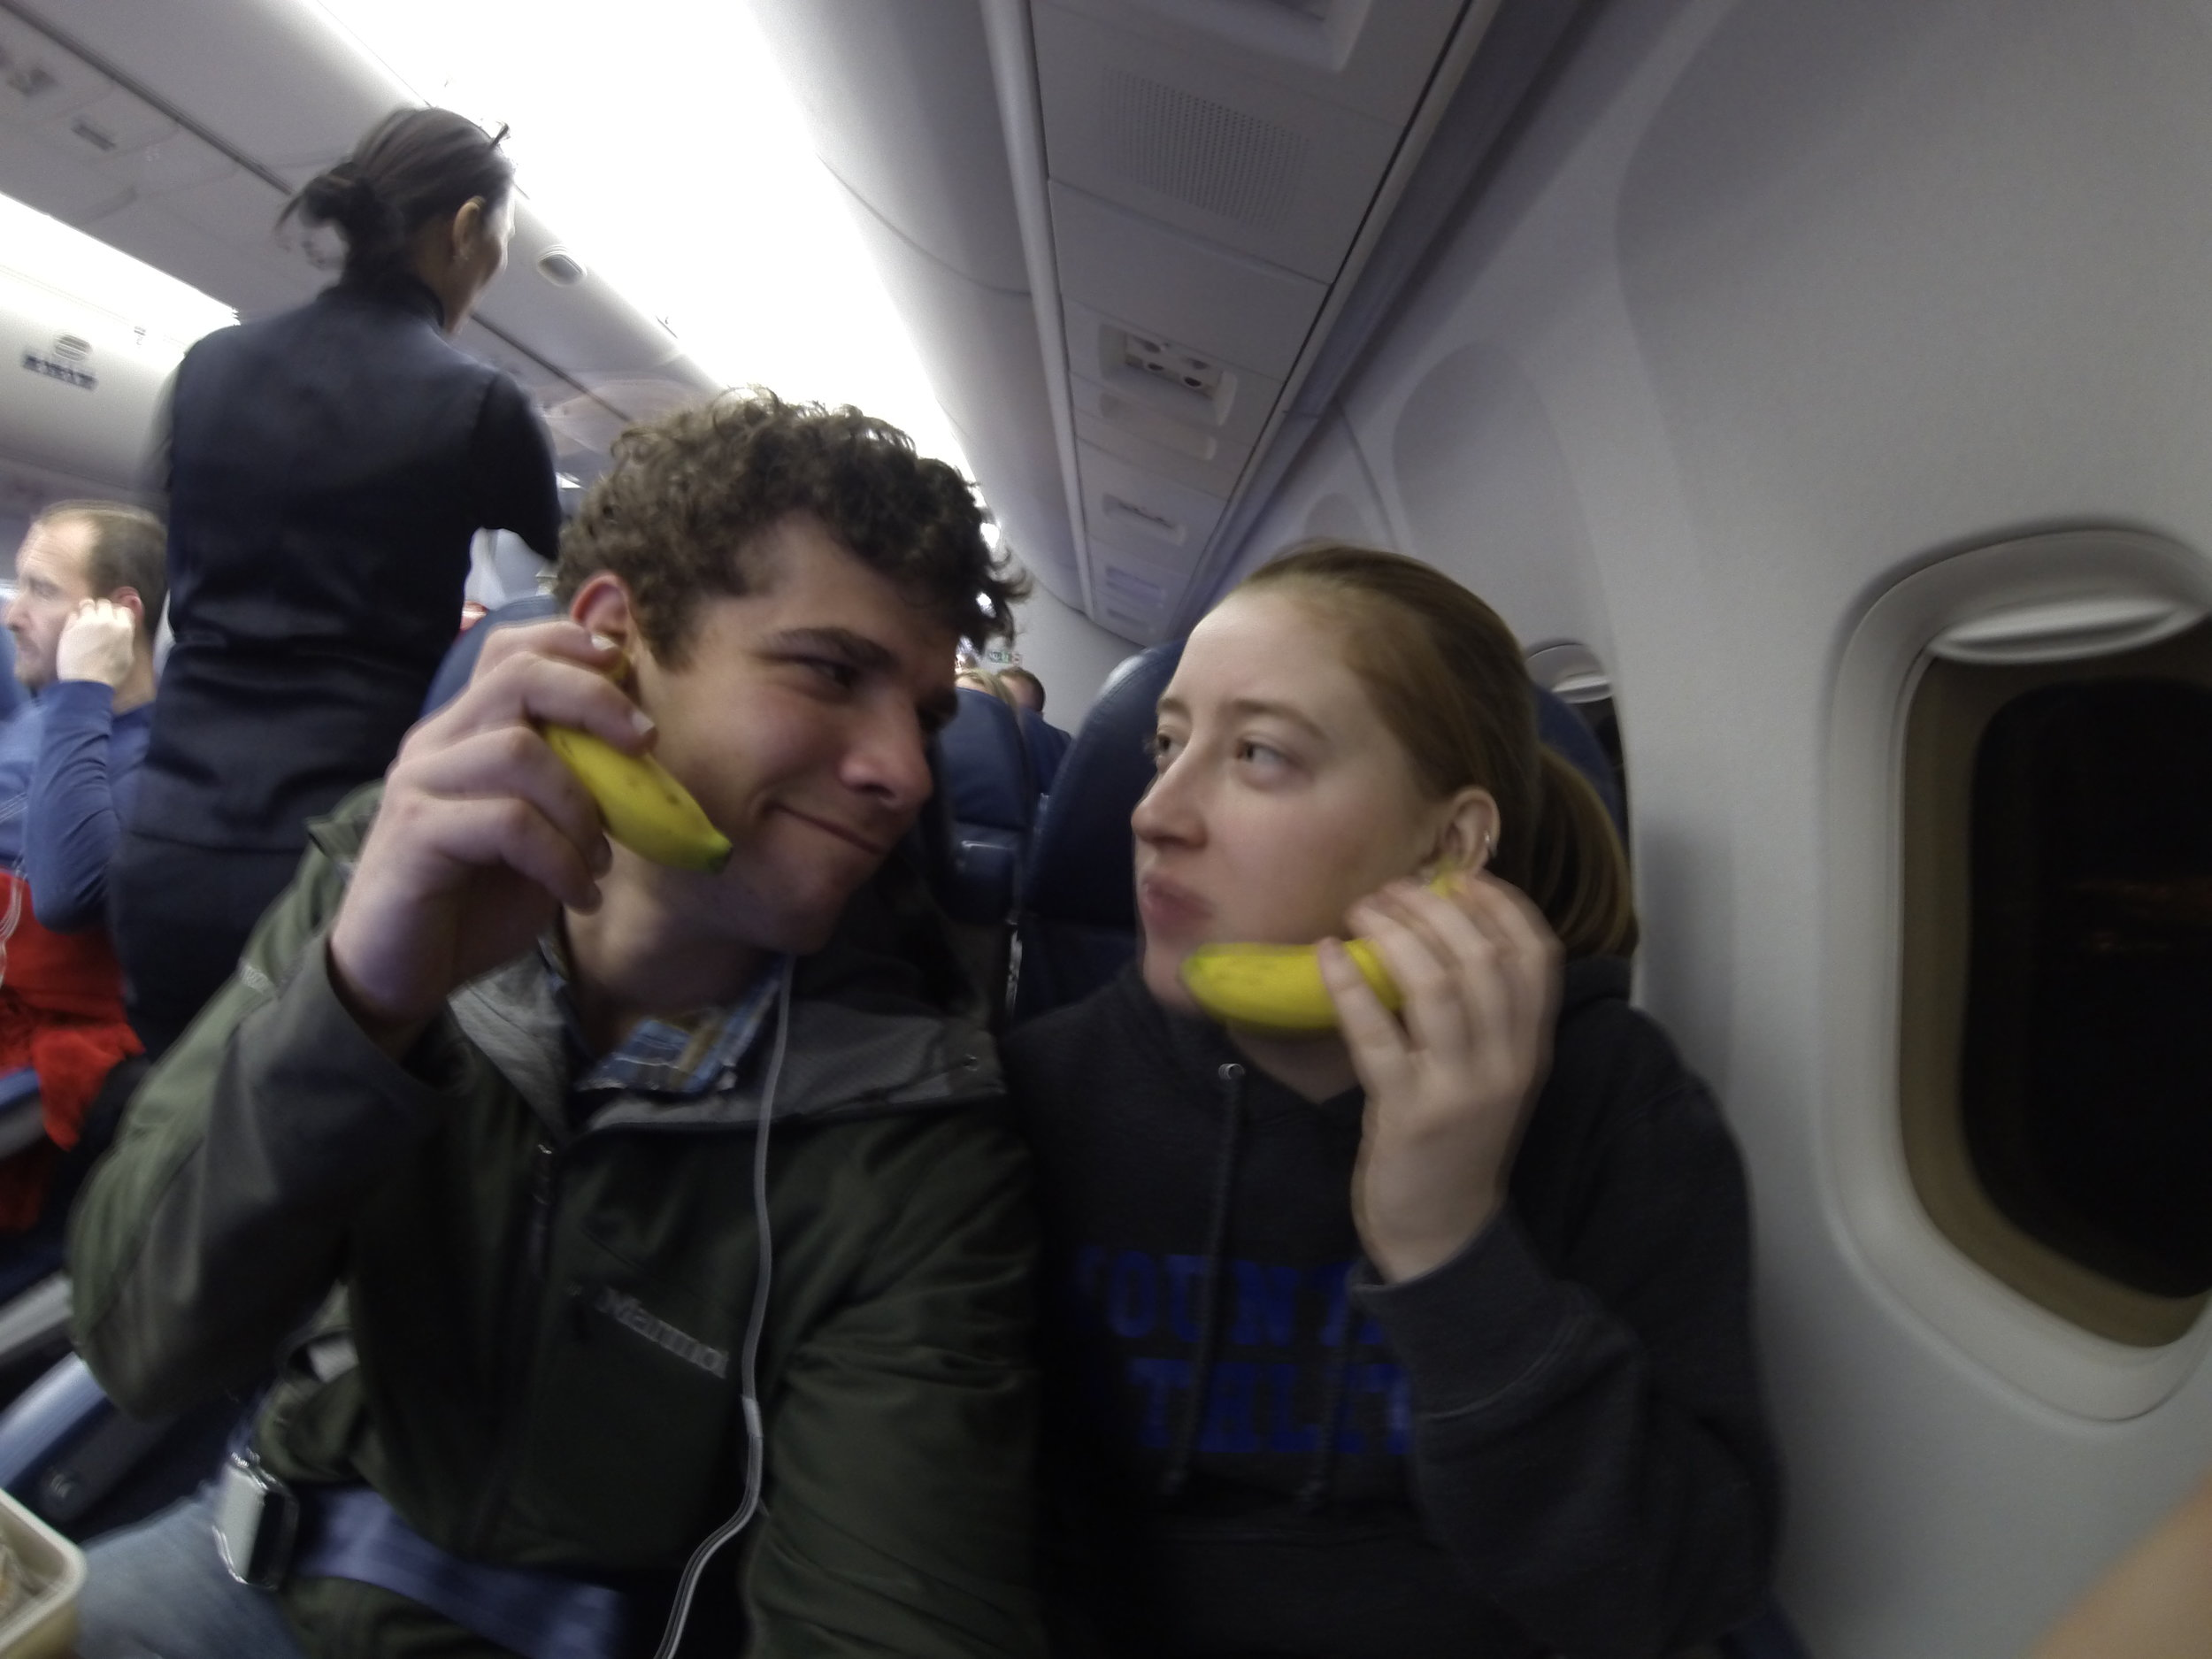 Playing with our food on our flight.